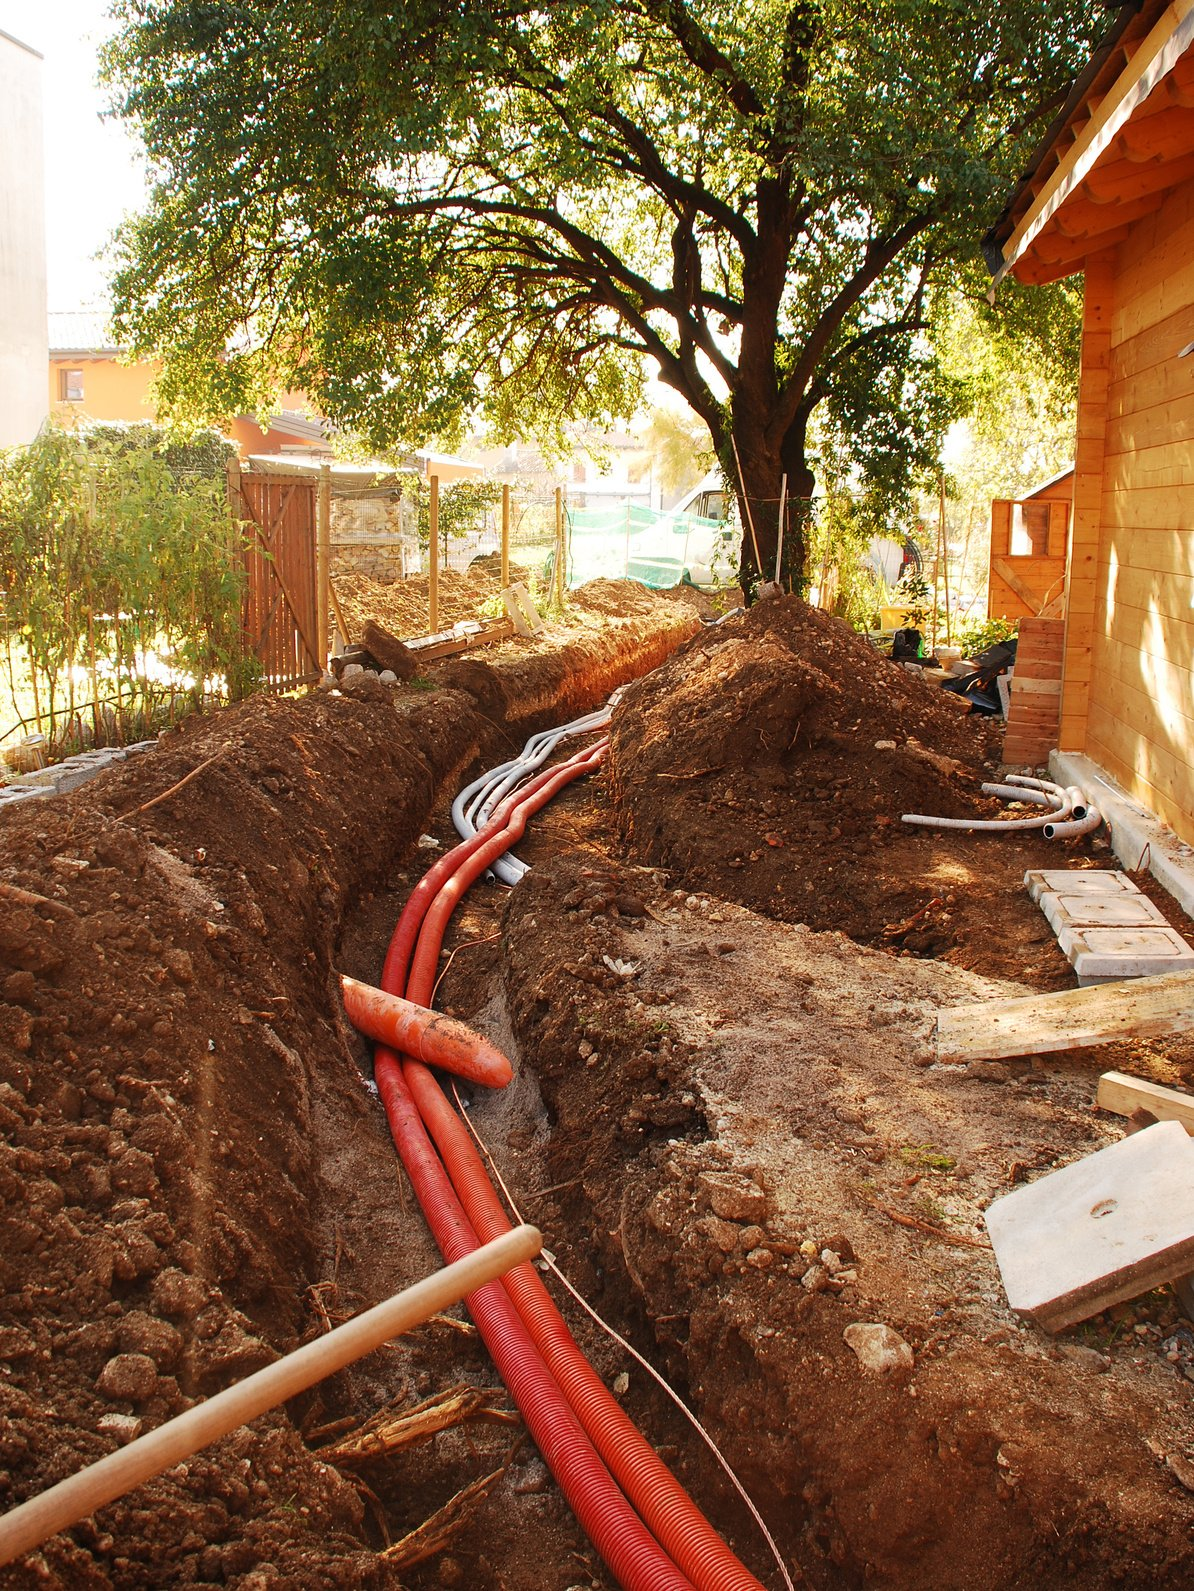 How Do Utility Lines Affect Trenchless Pipe Repair